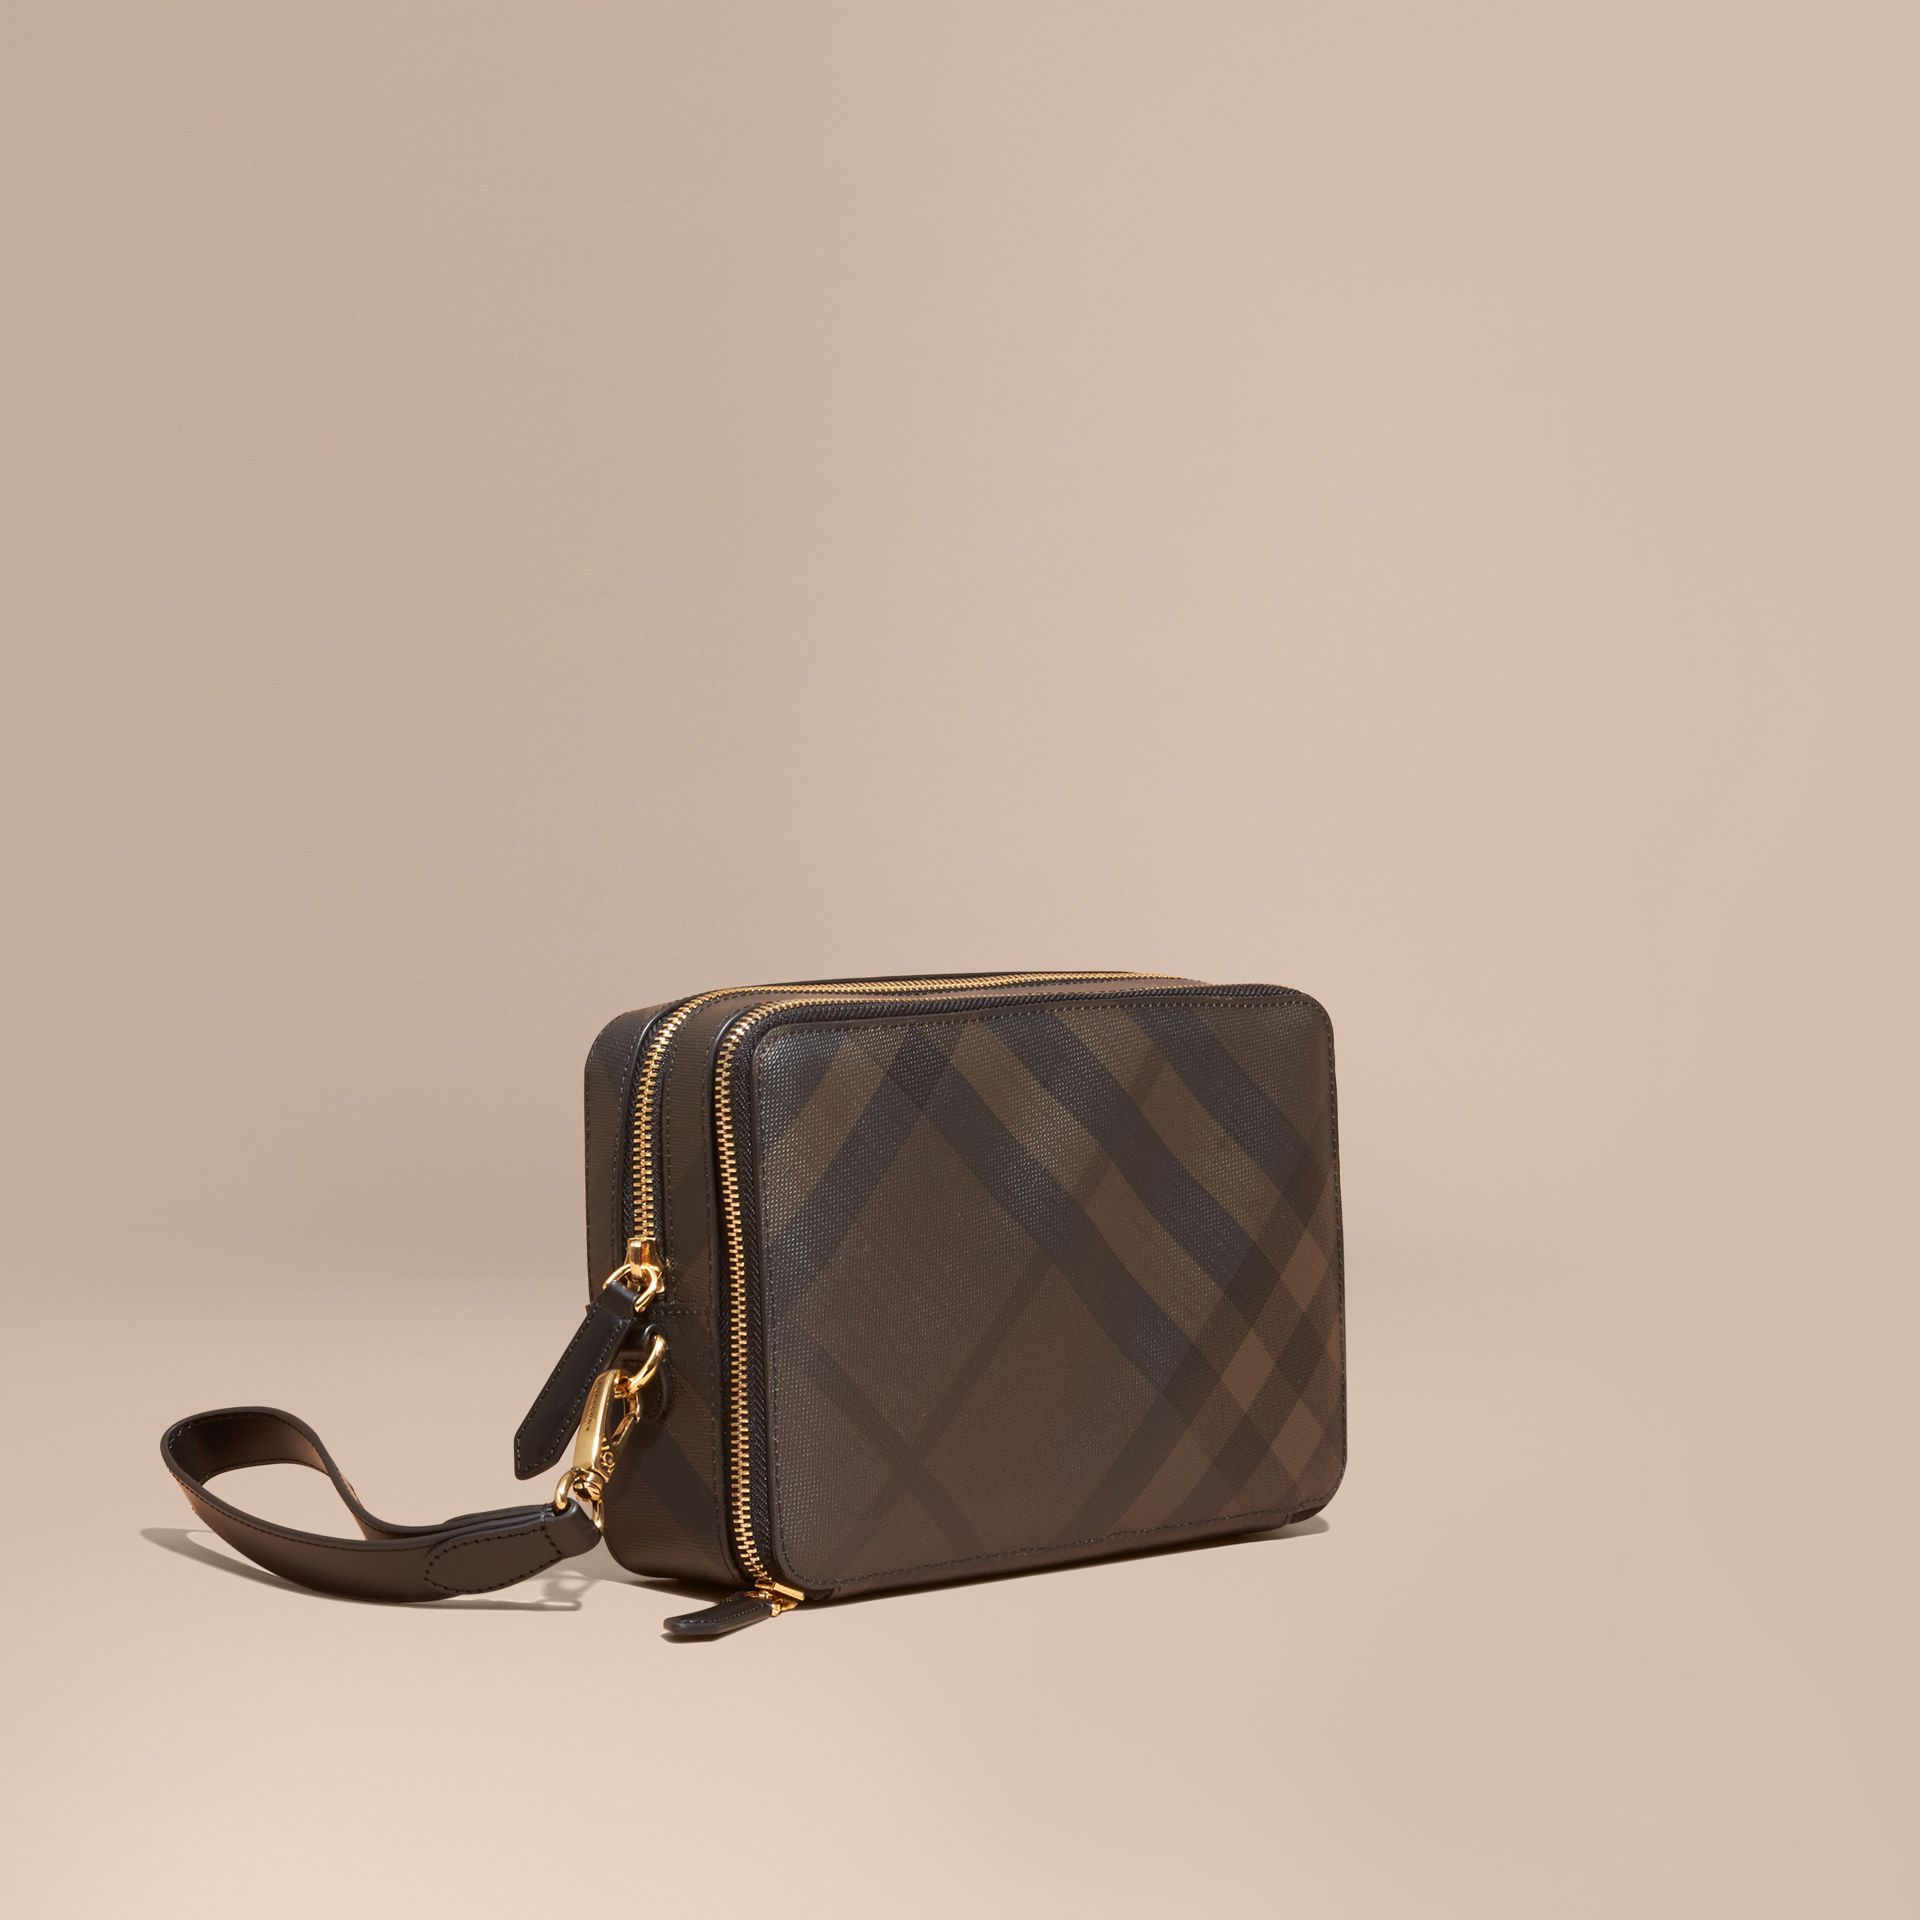 Leather-trimmed London Check Pouch in Chocolate/black - Men | Burberry Canada - gallery image 1